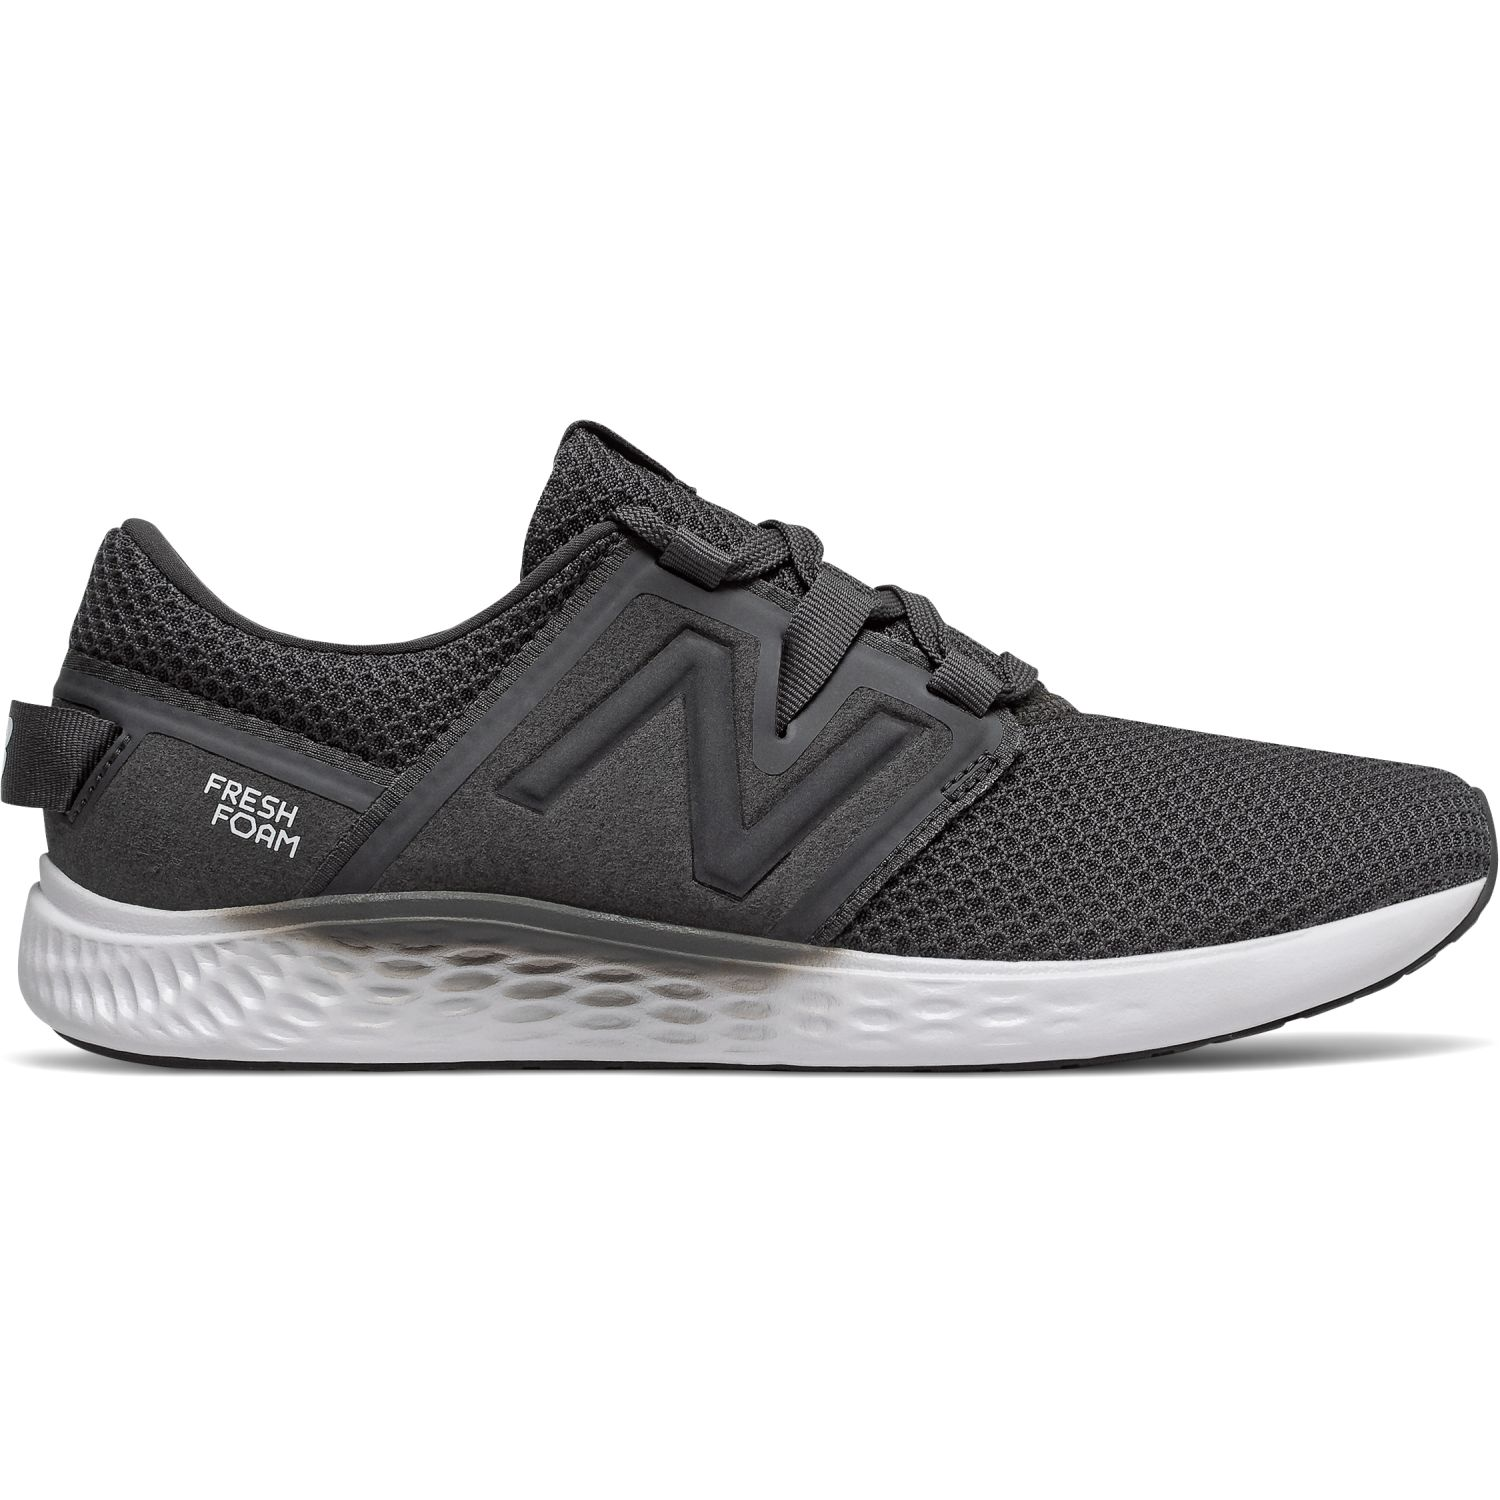 New Balance vero PLOMO / BLANCO Trail Running